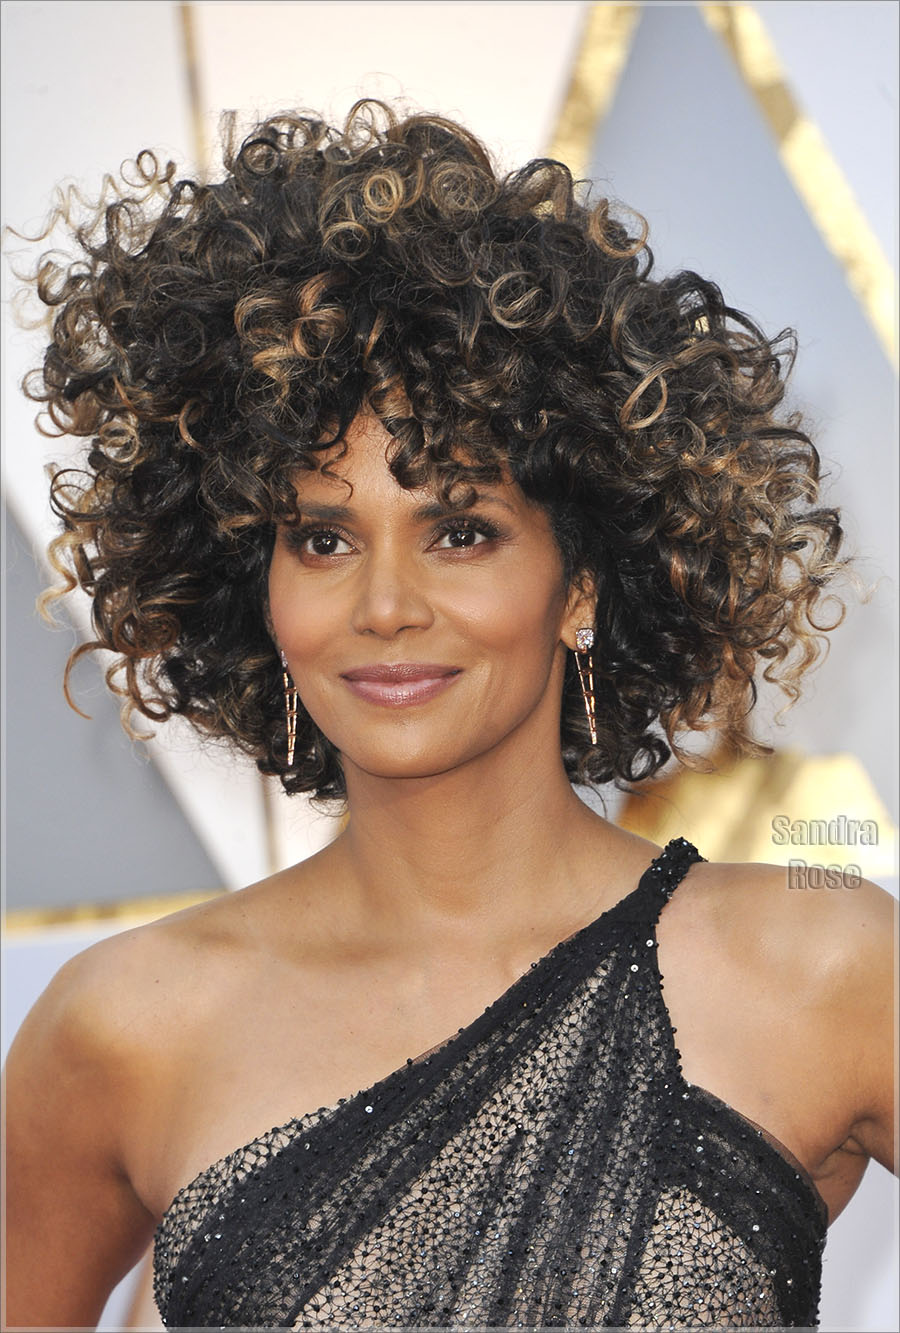 Halle Berry wenn31089049 halle berry's hair stylist wants you to know